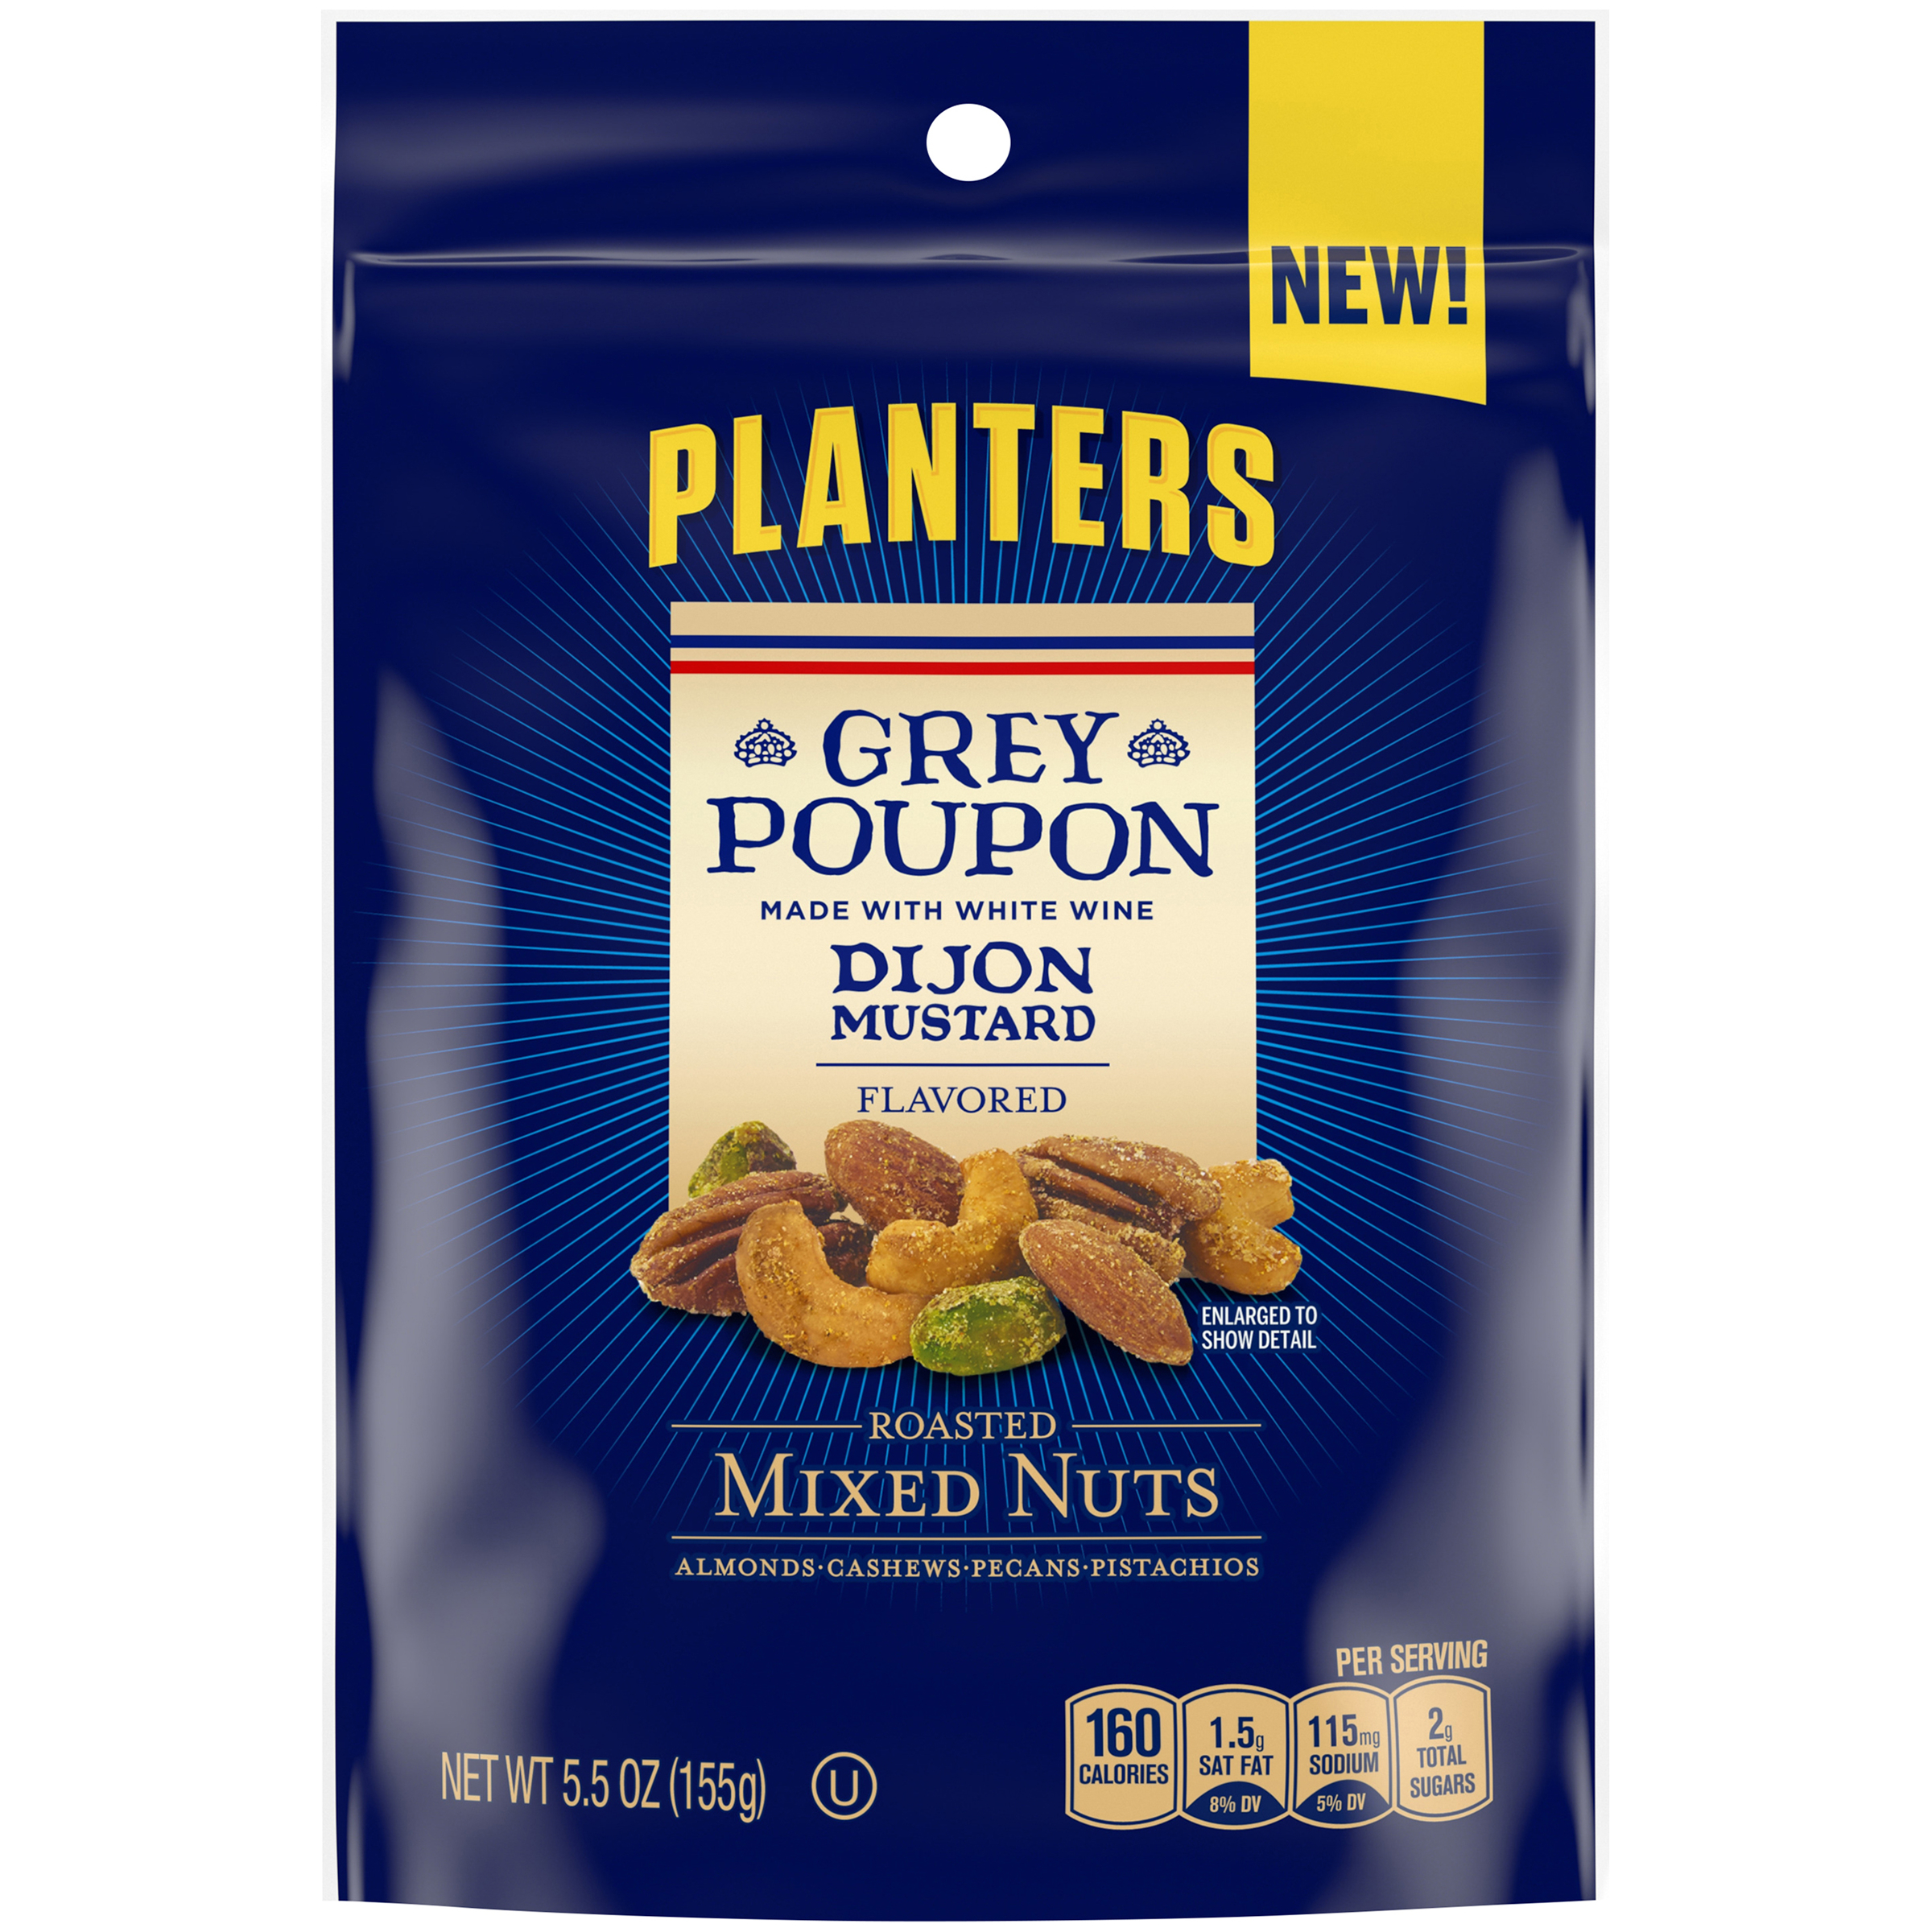 PLANTERS® Grey Poupon Sauce Flavored Roasted Mixed Nuts 5 oz bag